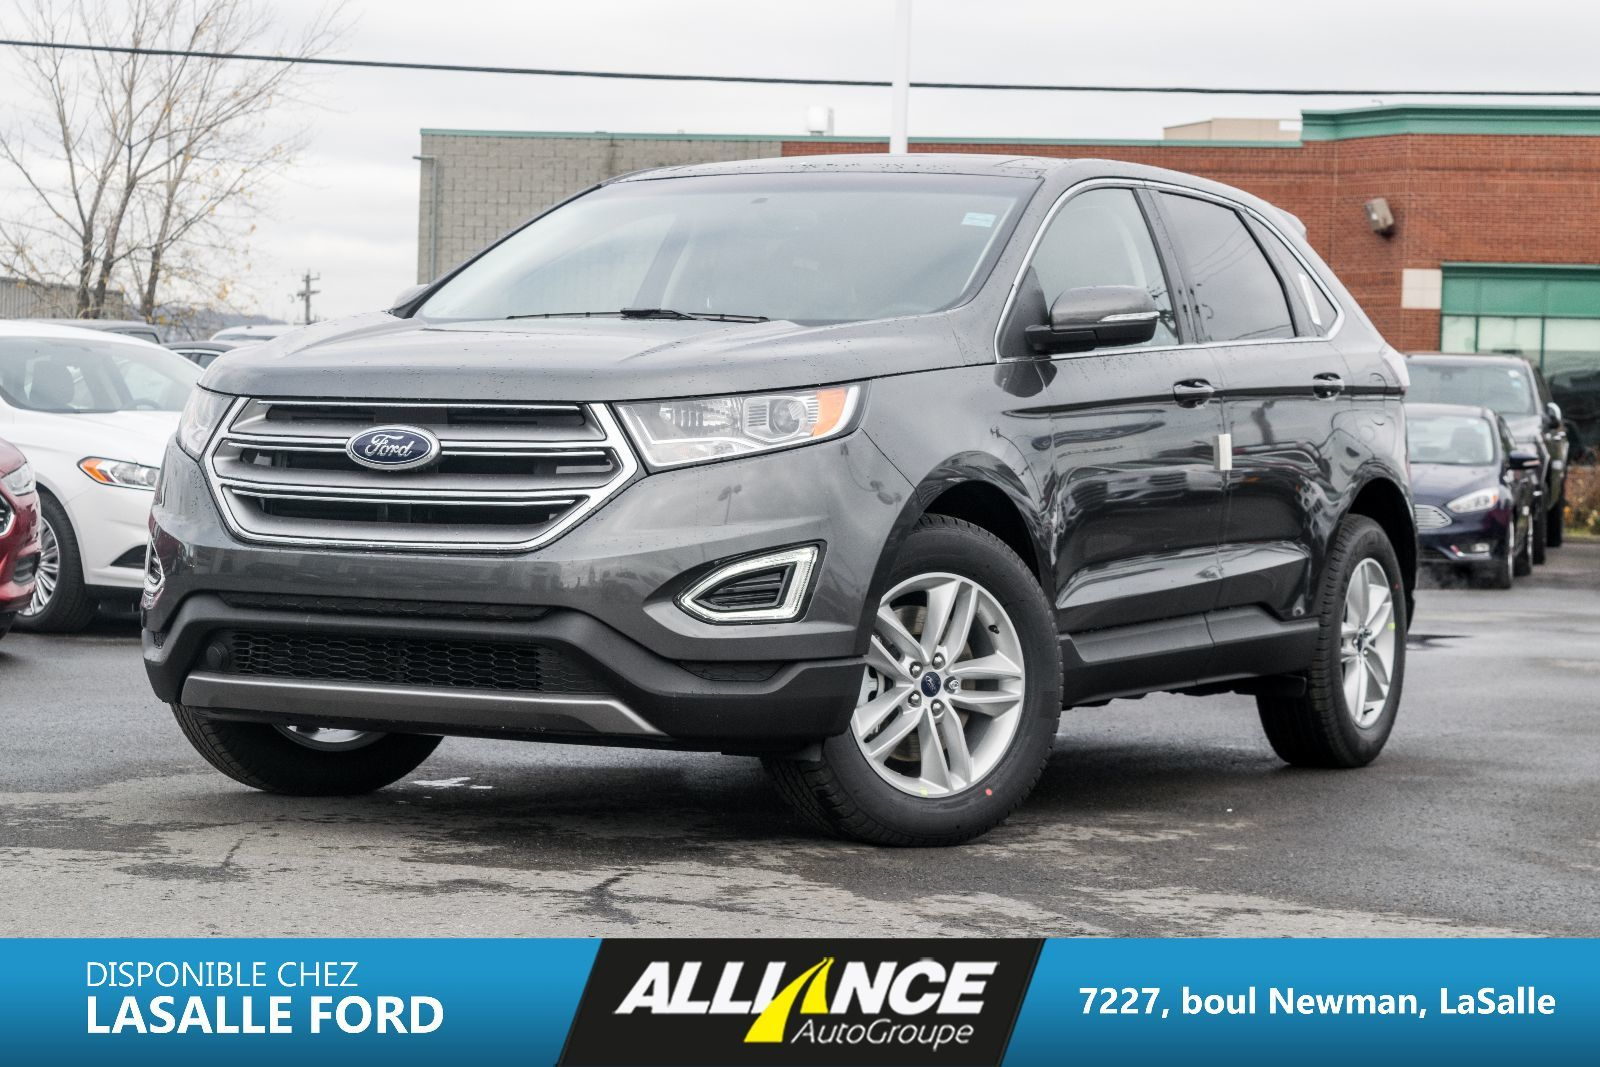 new 2016 ford edge sel for sale in lasalle lasalle ford in lasalle quebec. Black Bedroom Furniture Sets. Home Design Ideas